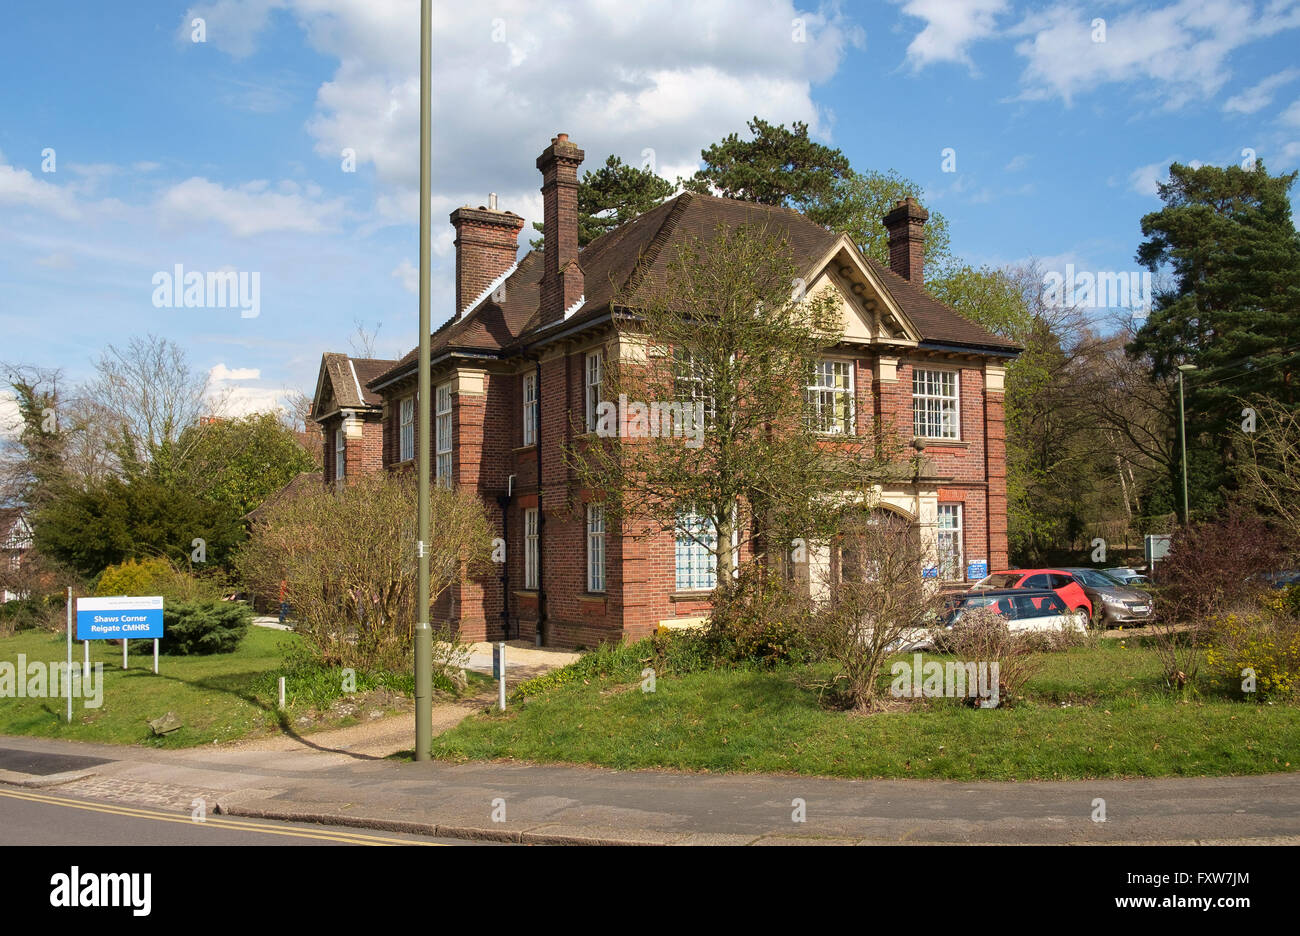 Shaws Corner Reigate CMHRS - Community Mental Health Recovery Service run by Surrey and Borders Partnership NHS - Stock Image